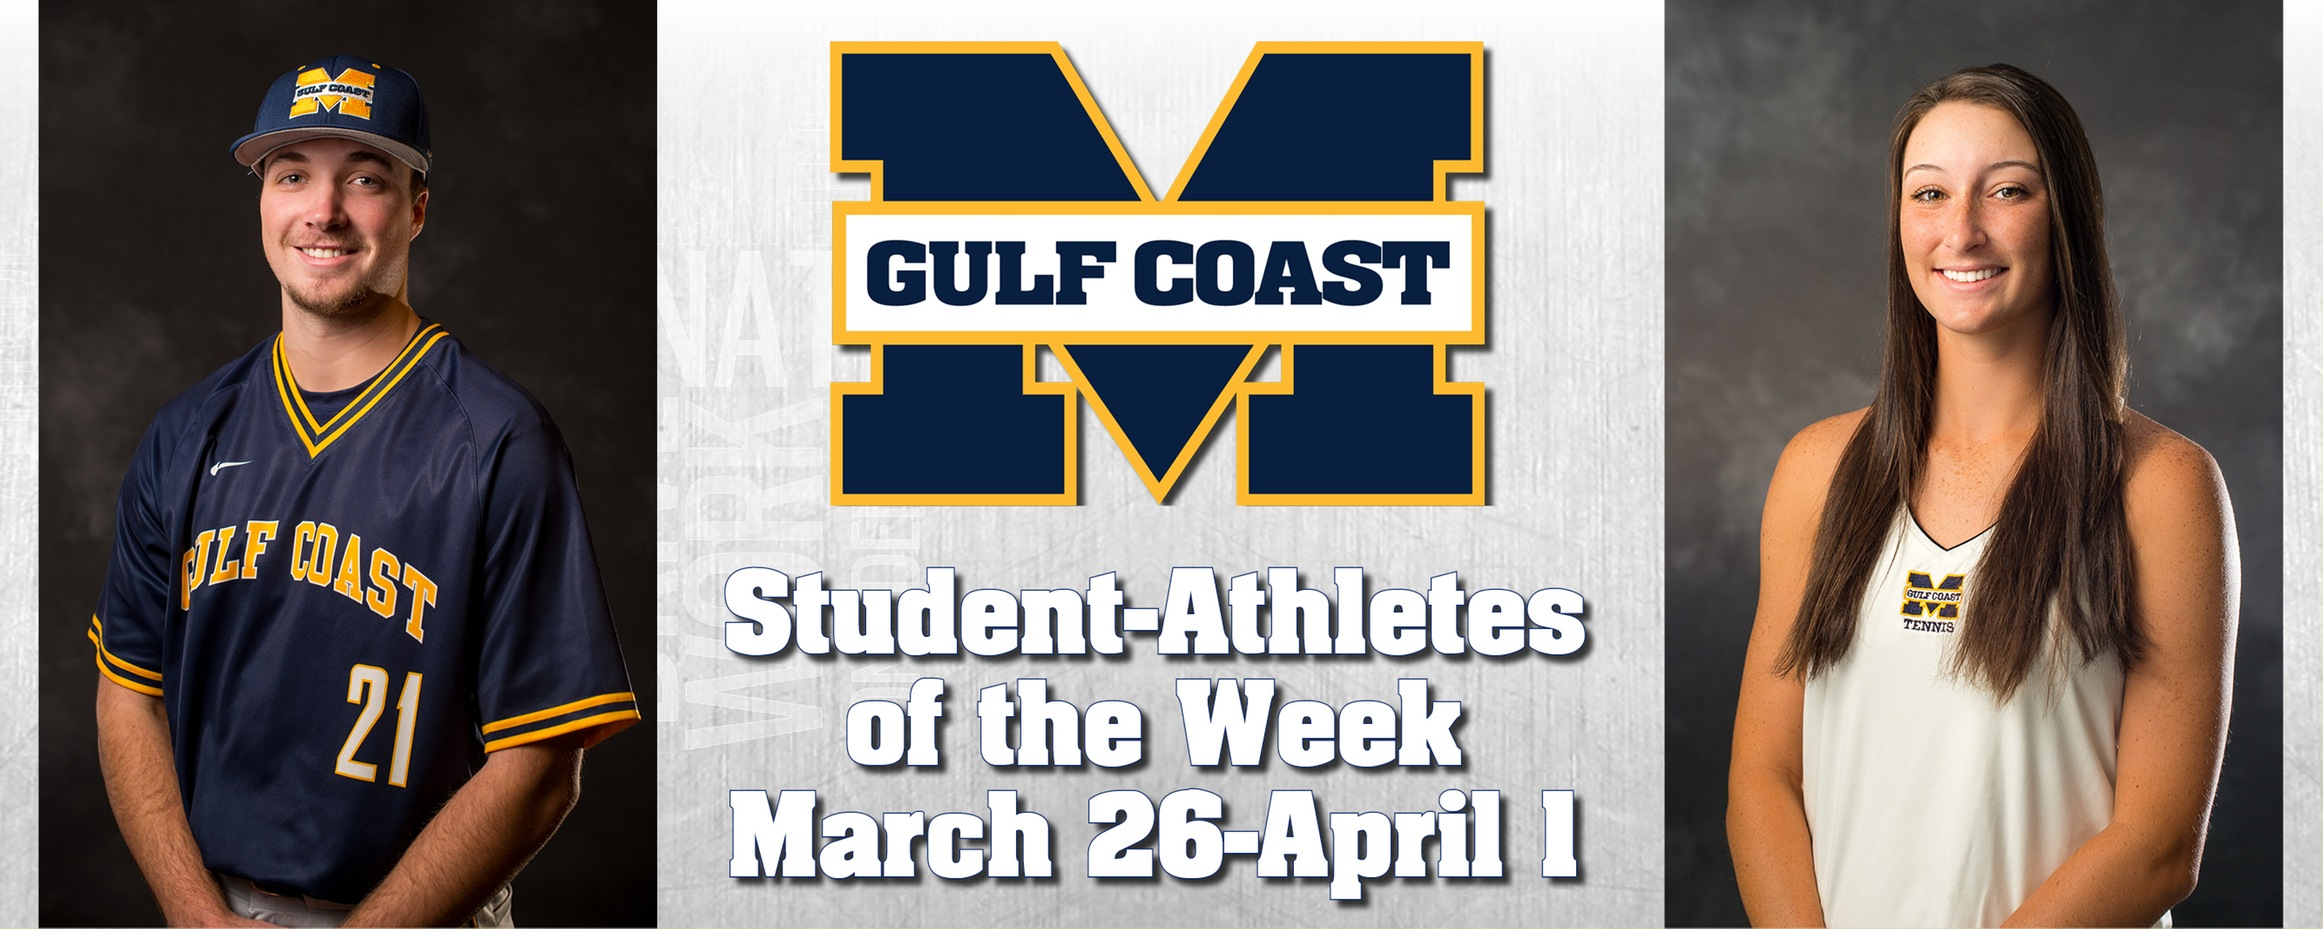 Barnes, Lyons named MGCCC Student-Athletes of the Week